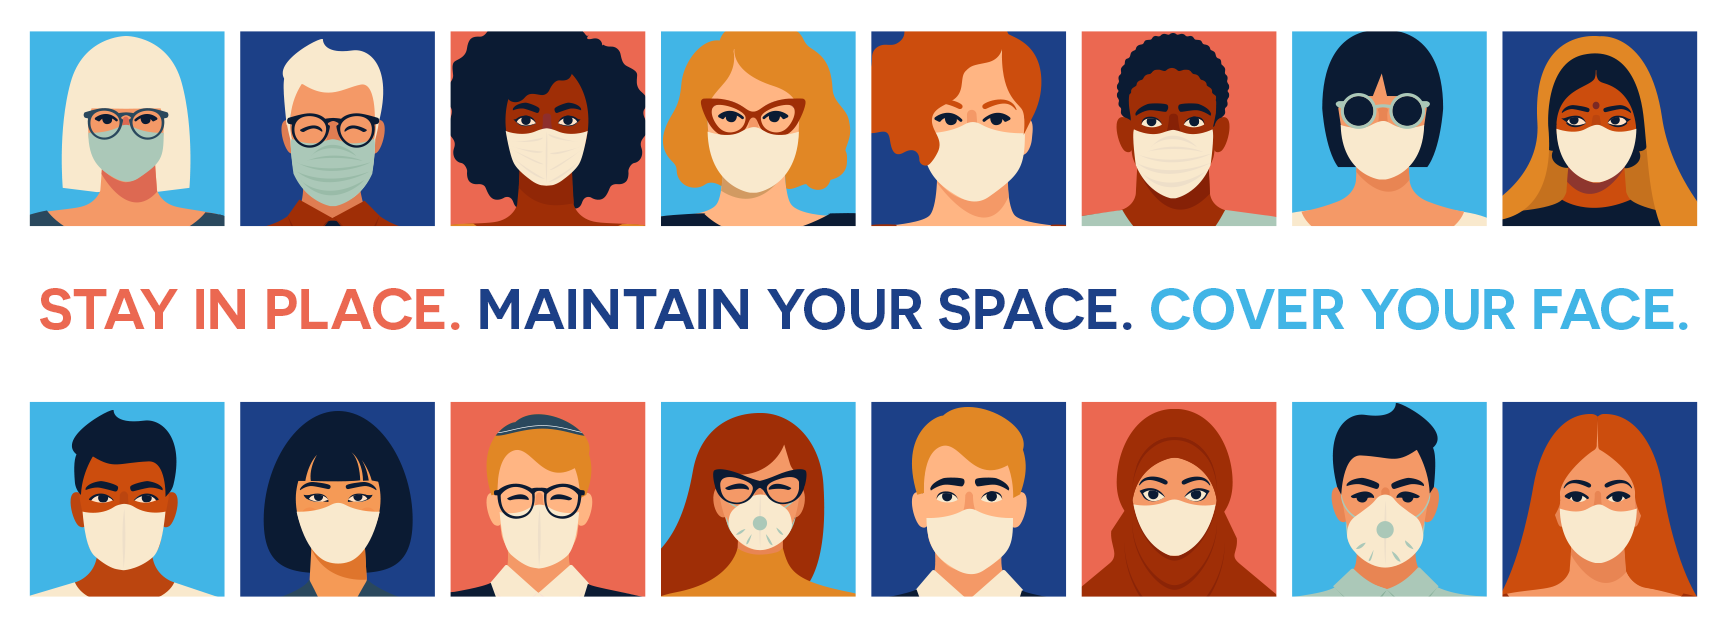 Stay in Place. Maintain Your Space. Cover Your Face